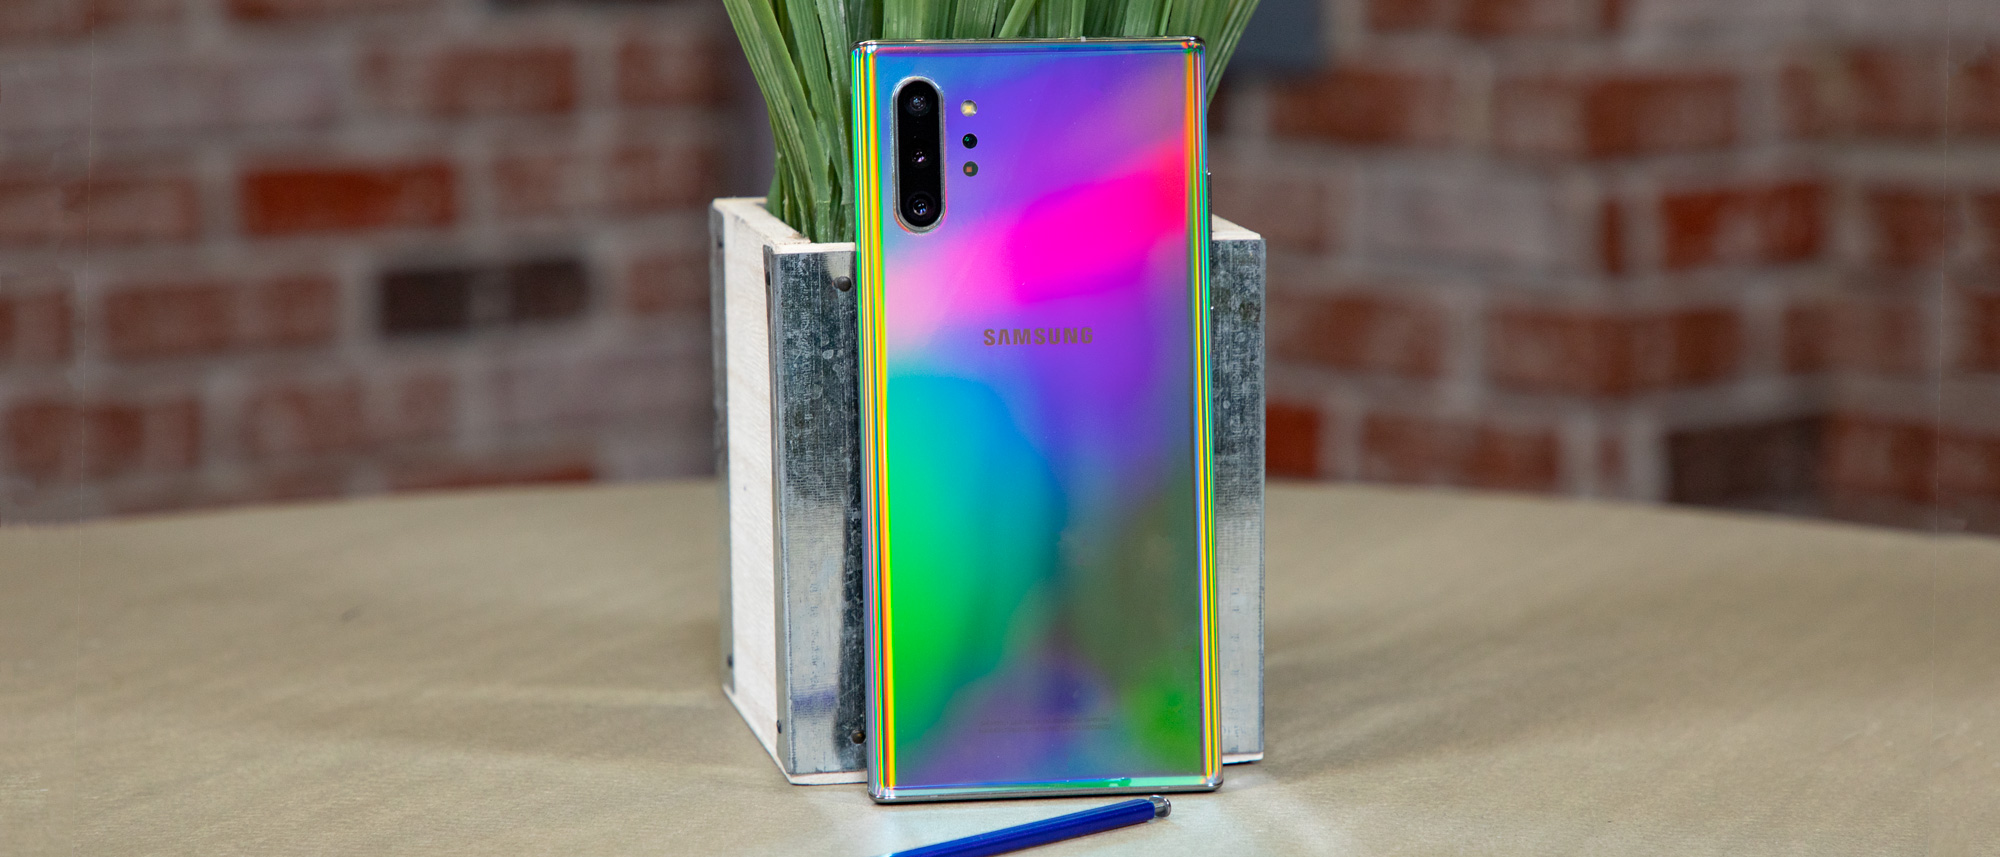 Samsung Galaxy Note 10 Plus review | Tom's Guide